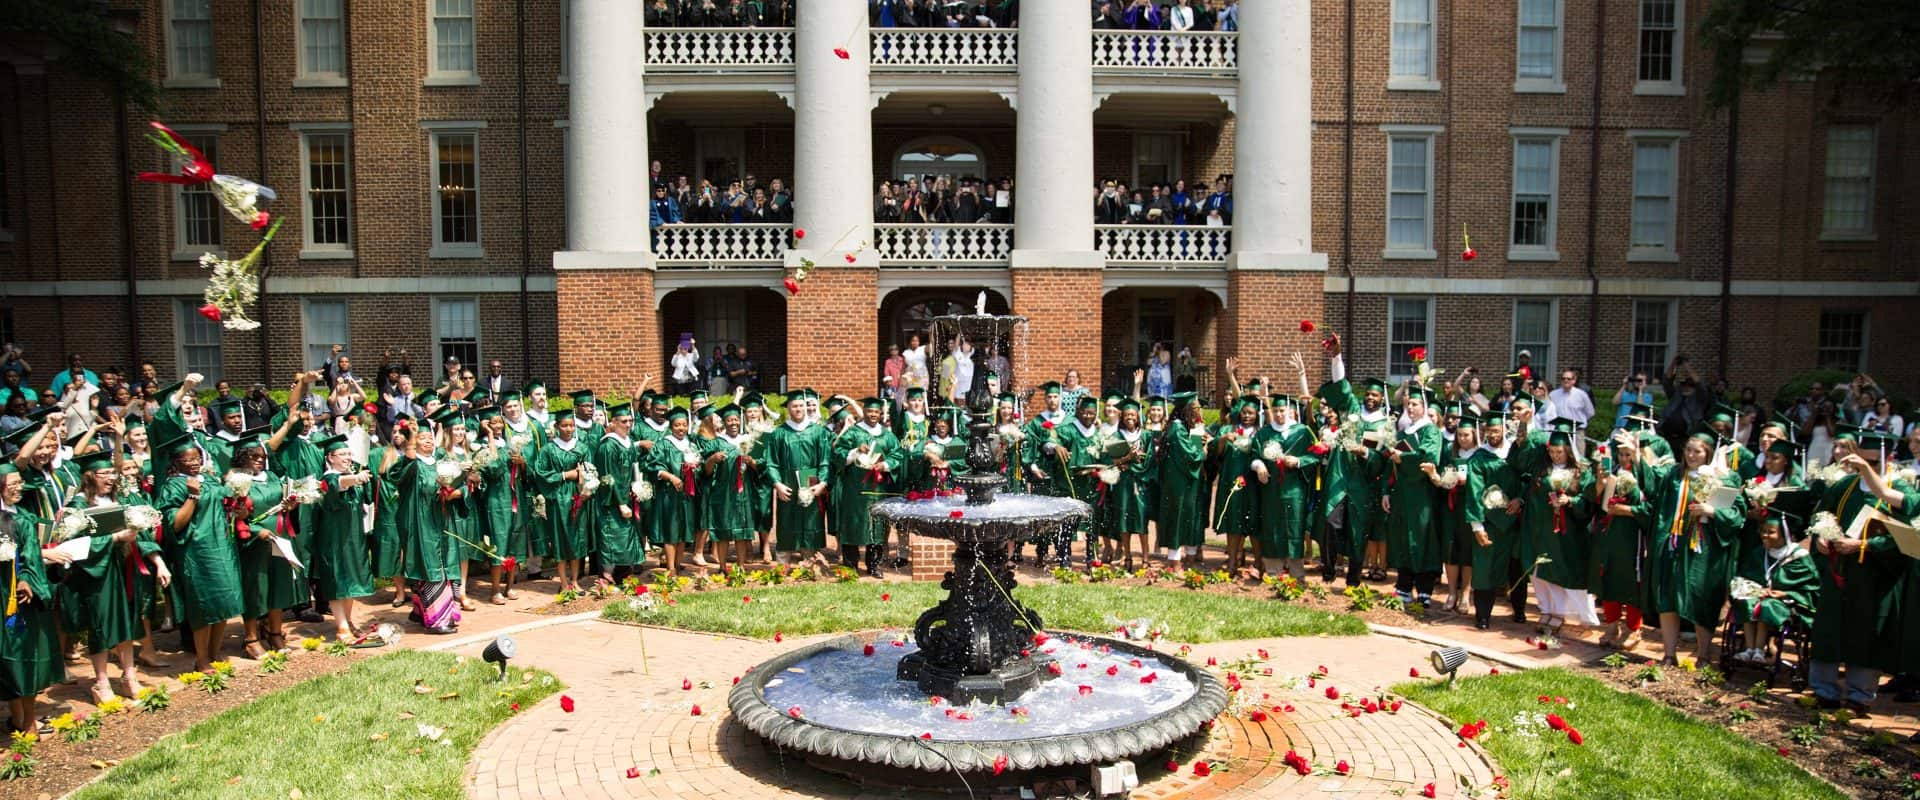 Every year, students throw their graduation roses into the historic Main Fountain